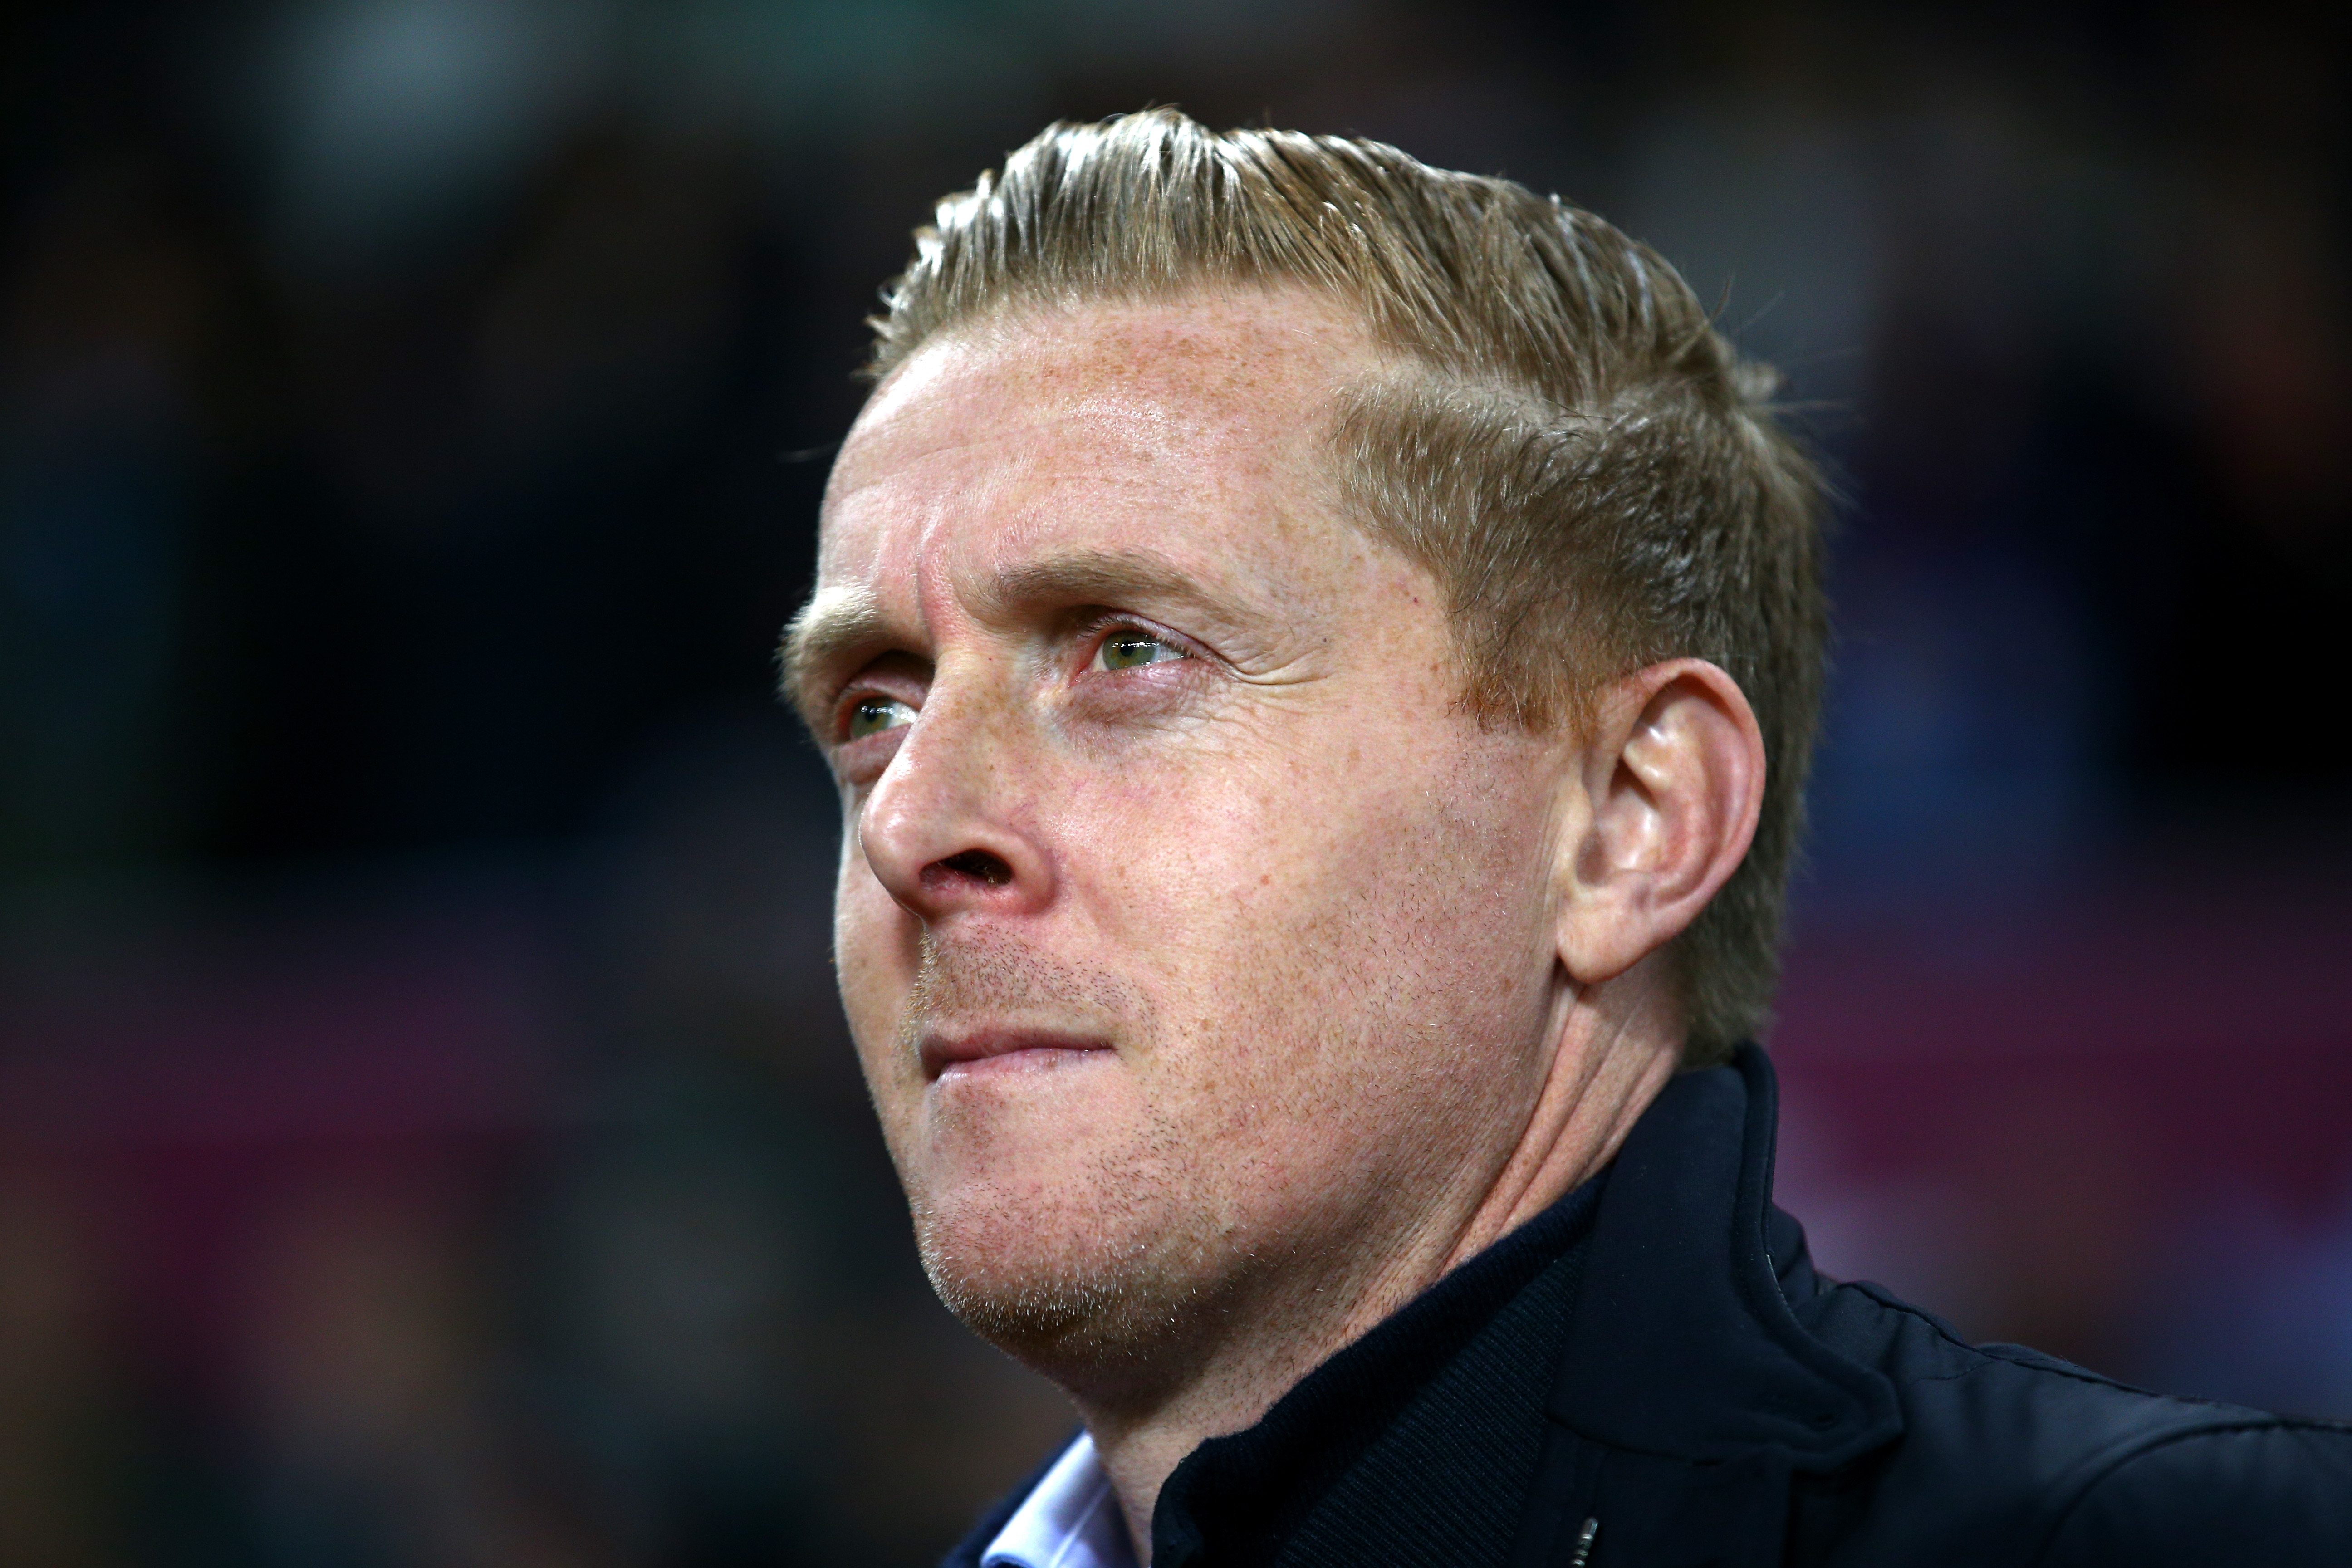 Garry Monk confirmed as new Middlesbrough Manager